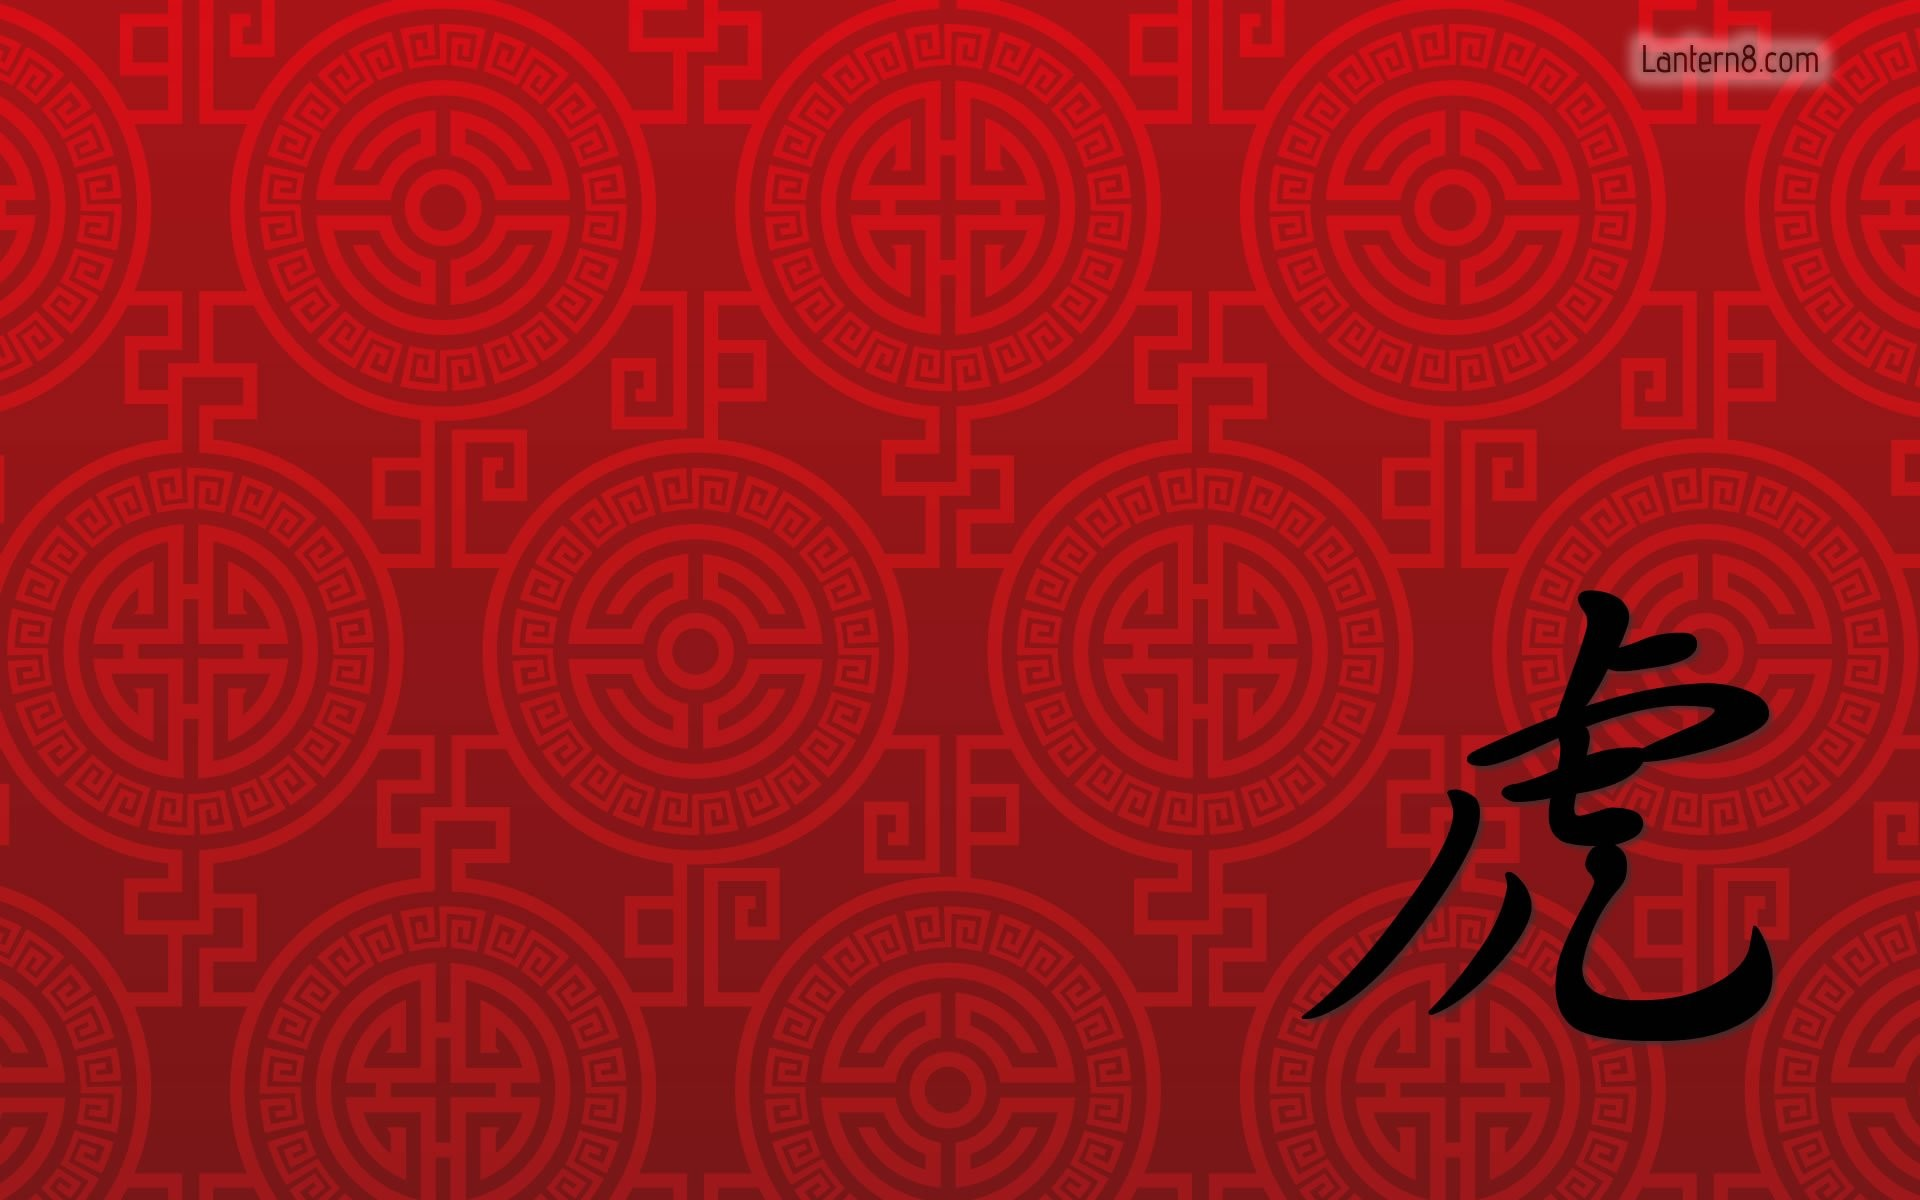 Chinese Letters Wallpaper (50+ Images